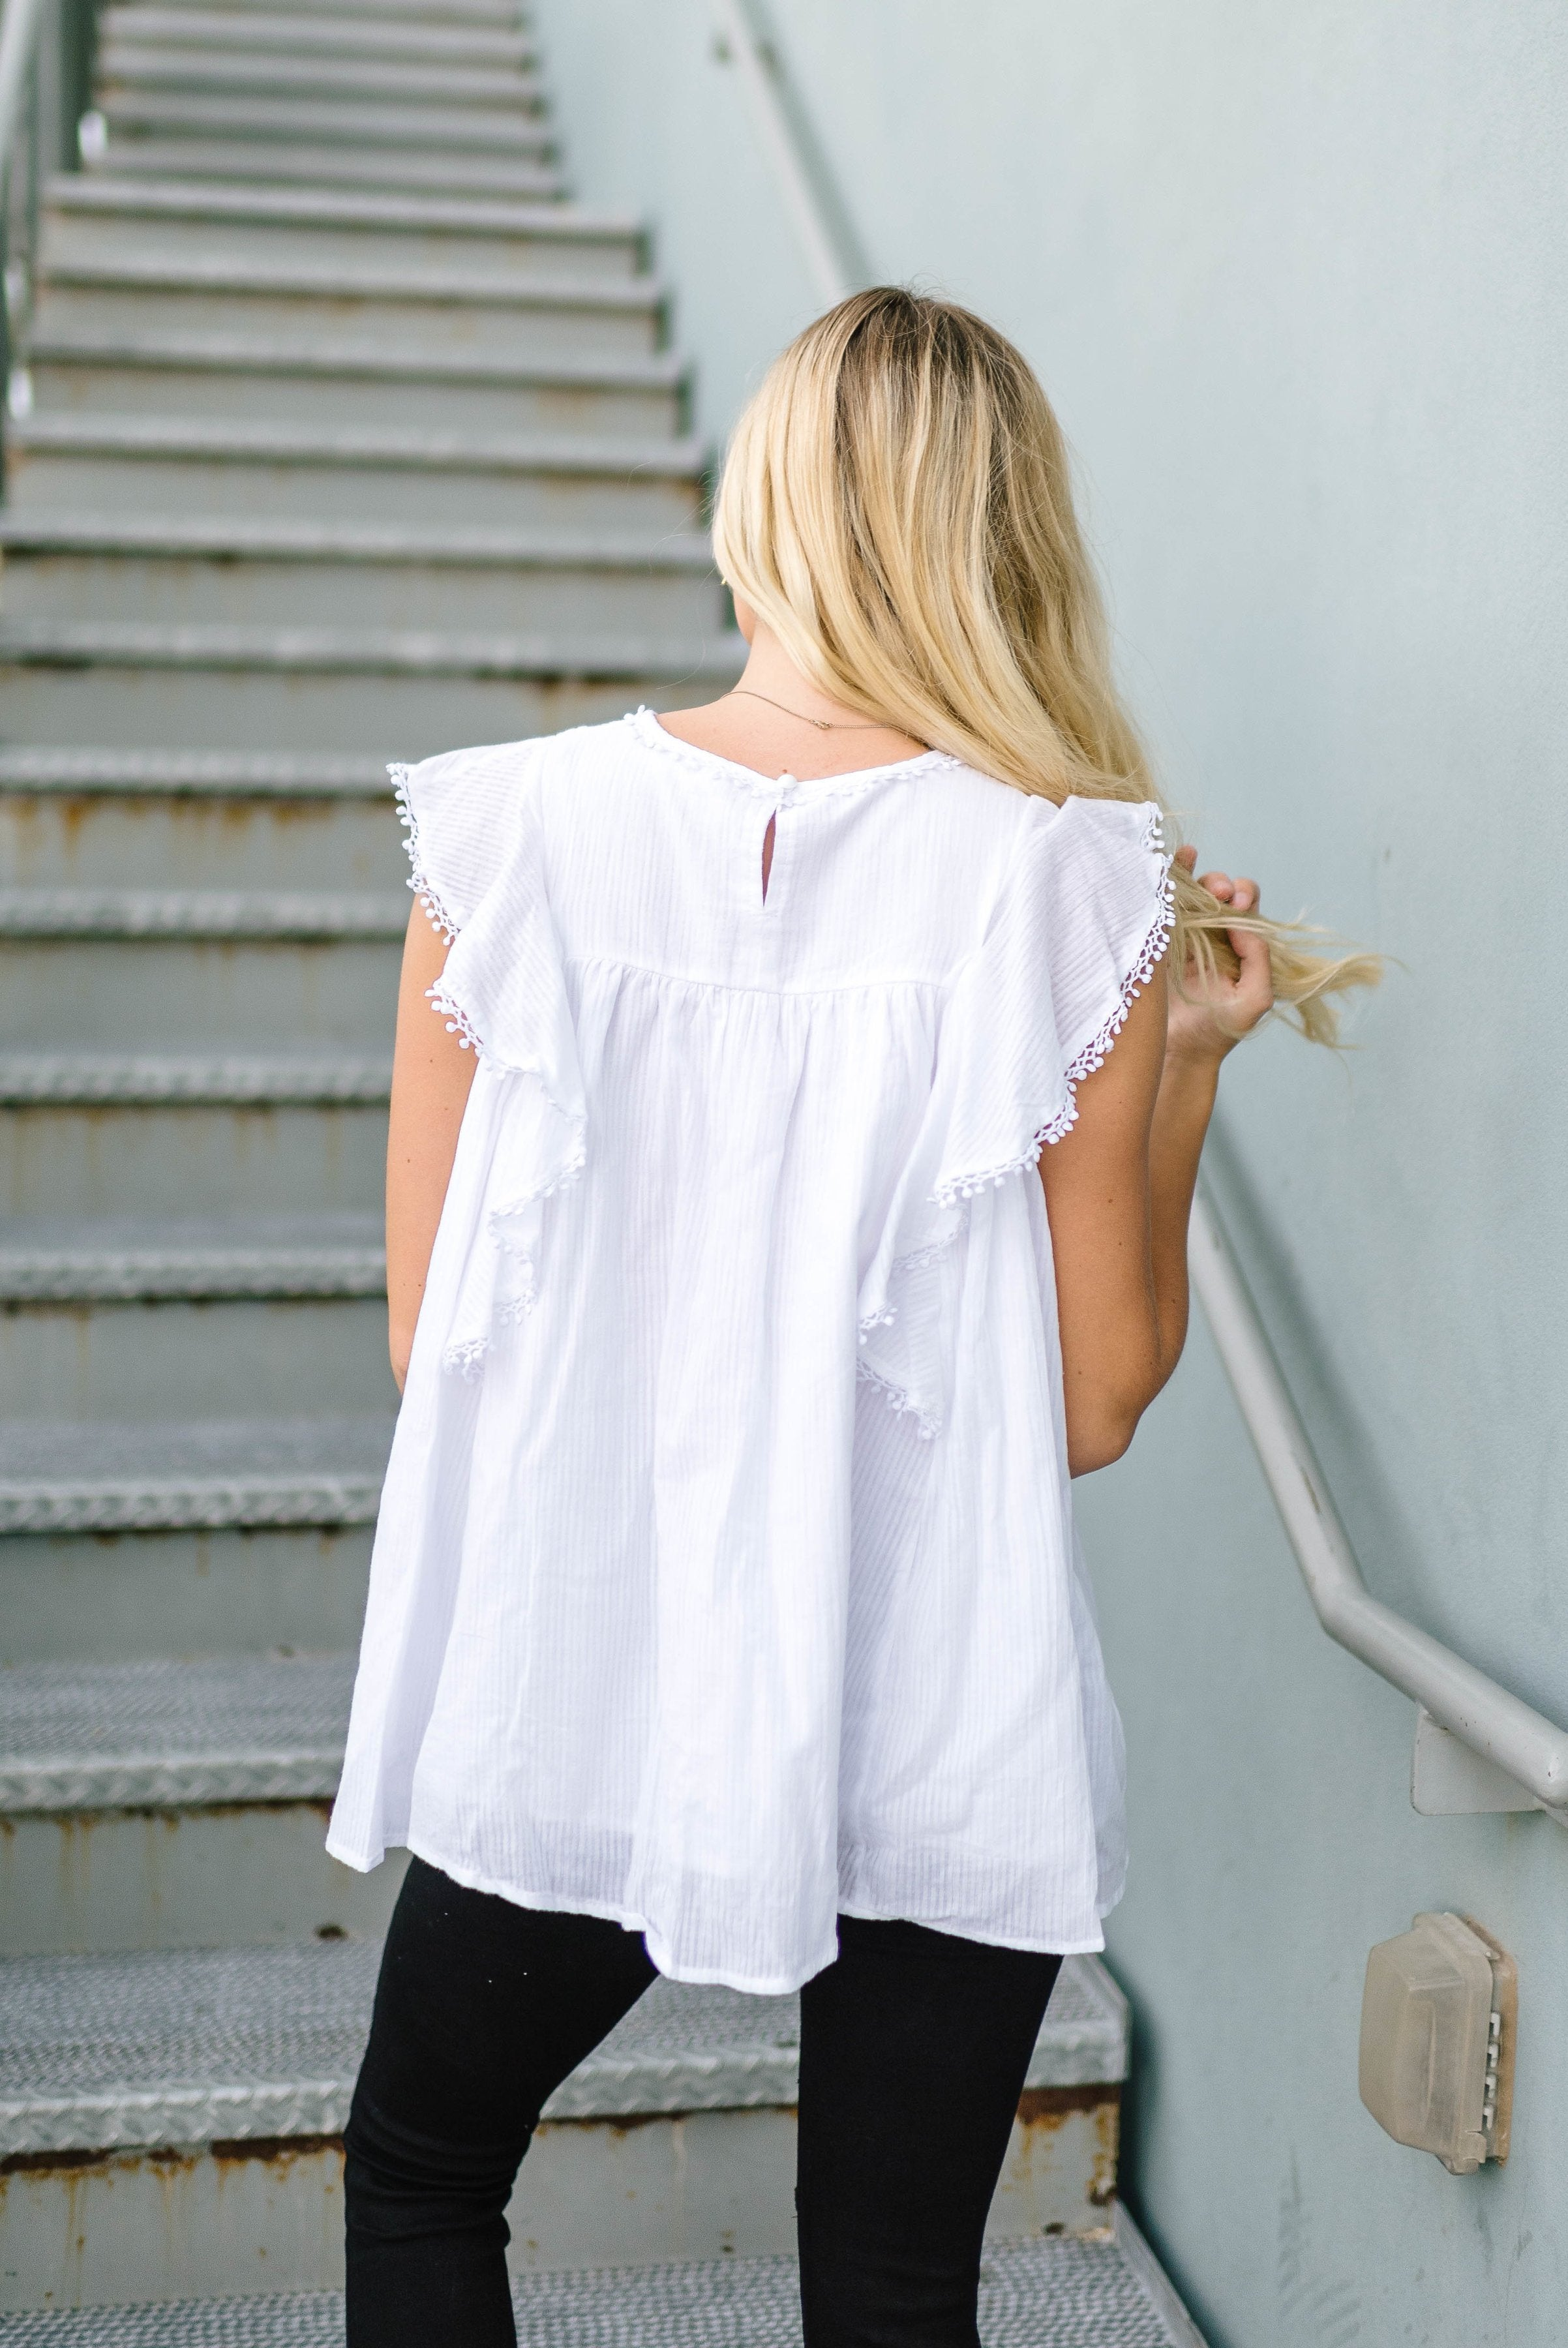 Summer Love Embroidered Top In White - ALL SALES FINAL